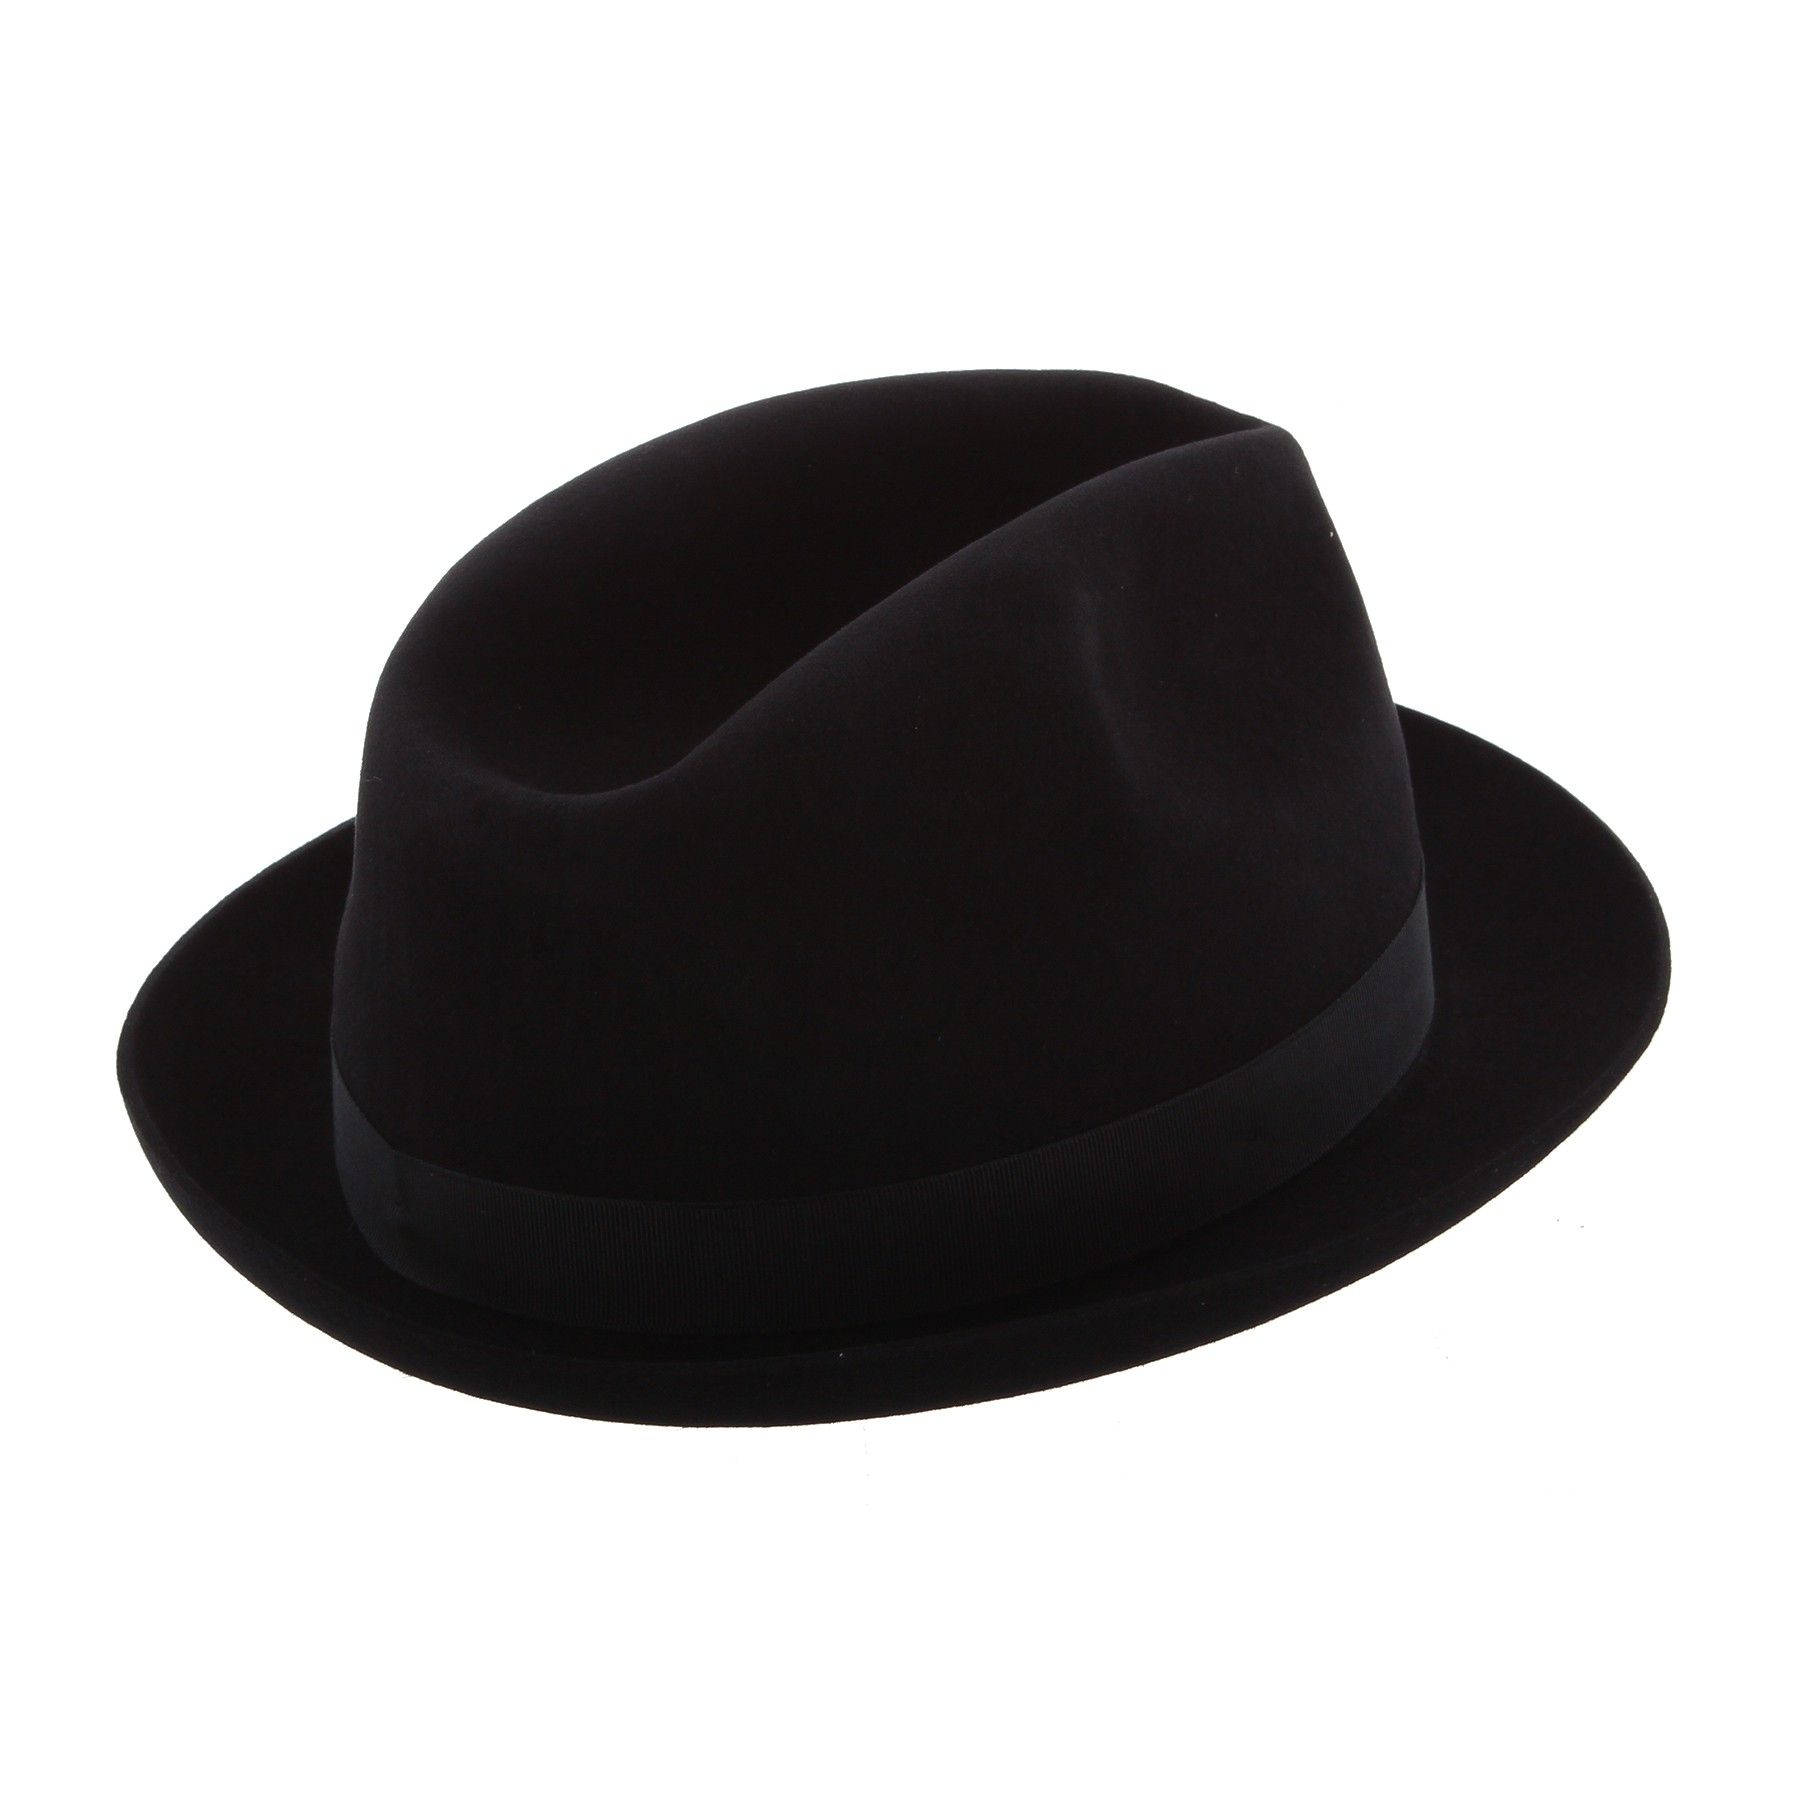 HACKETT LONDON Hut Cappello, Kaninchenhaarfilz, schwarz Bild https://cdn03.plentymarkets.com/zsy4vjx32p87/item/images/4996/full/HM041313-ama-02.JPG